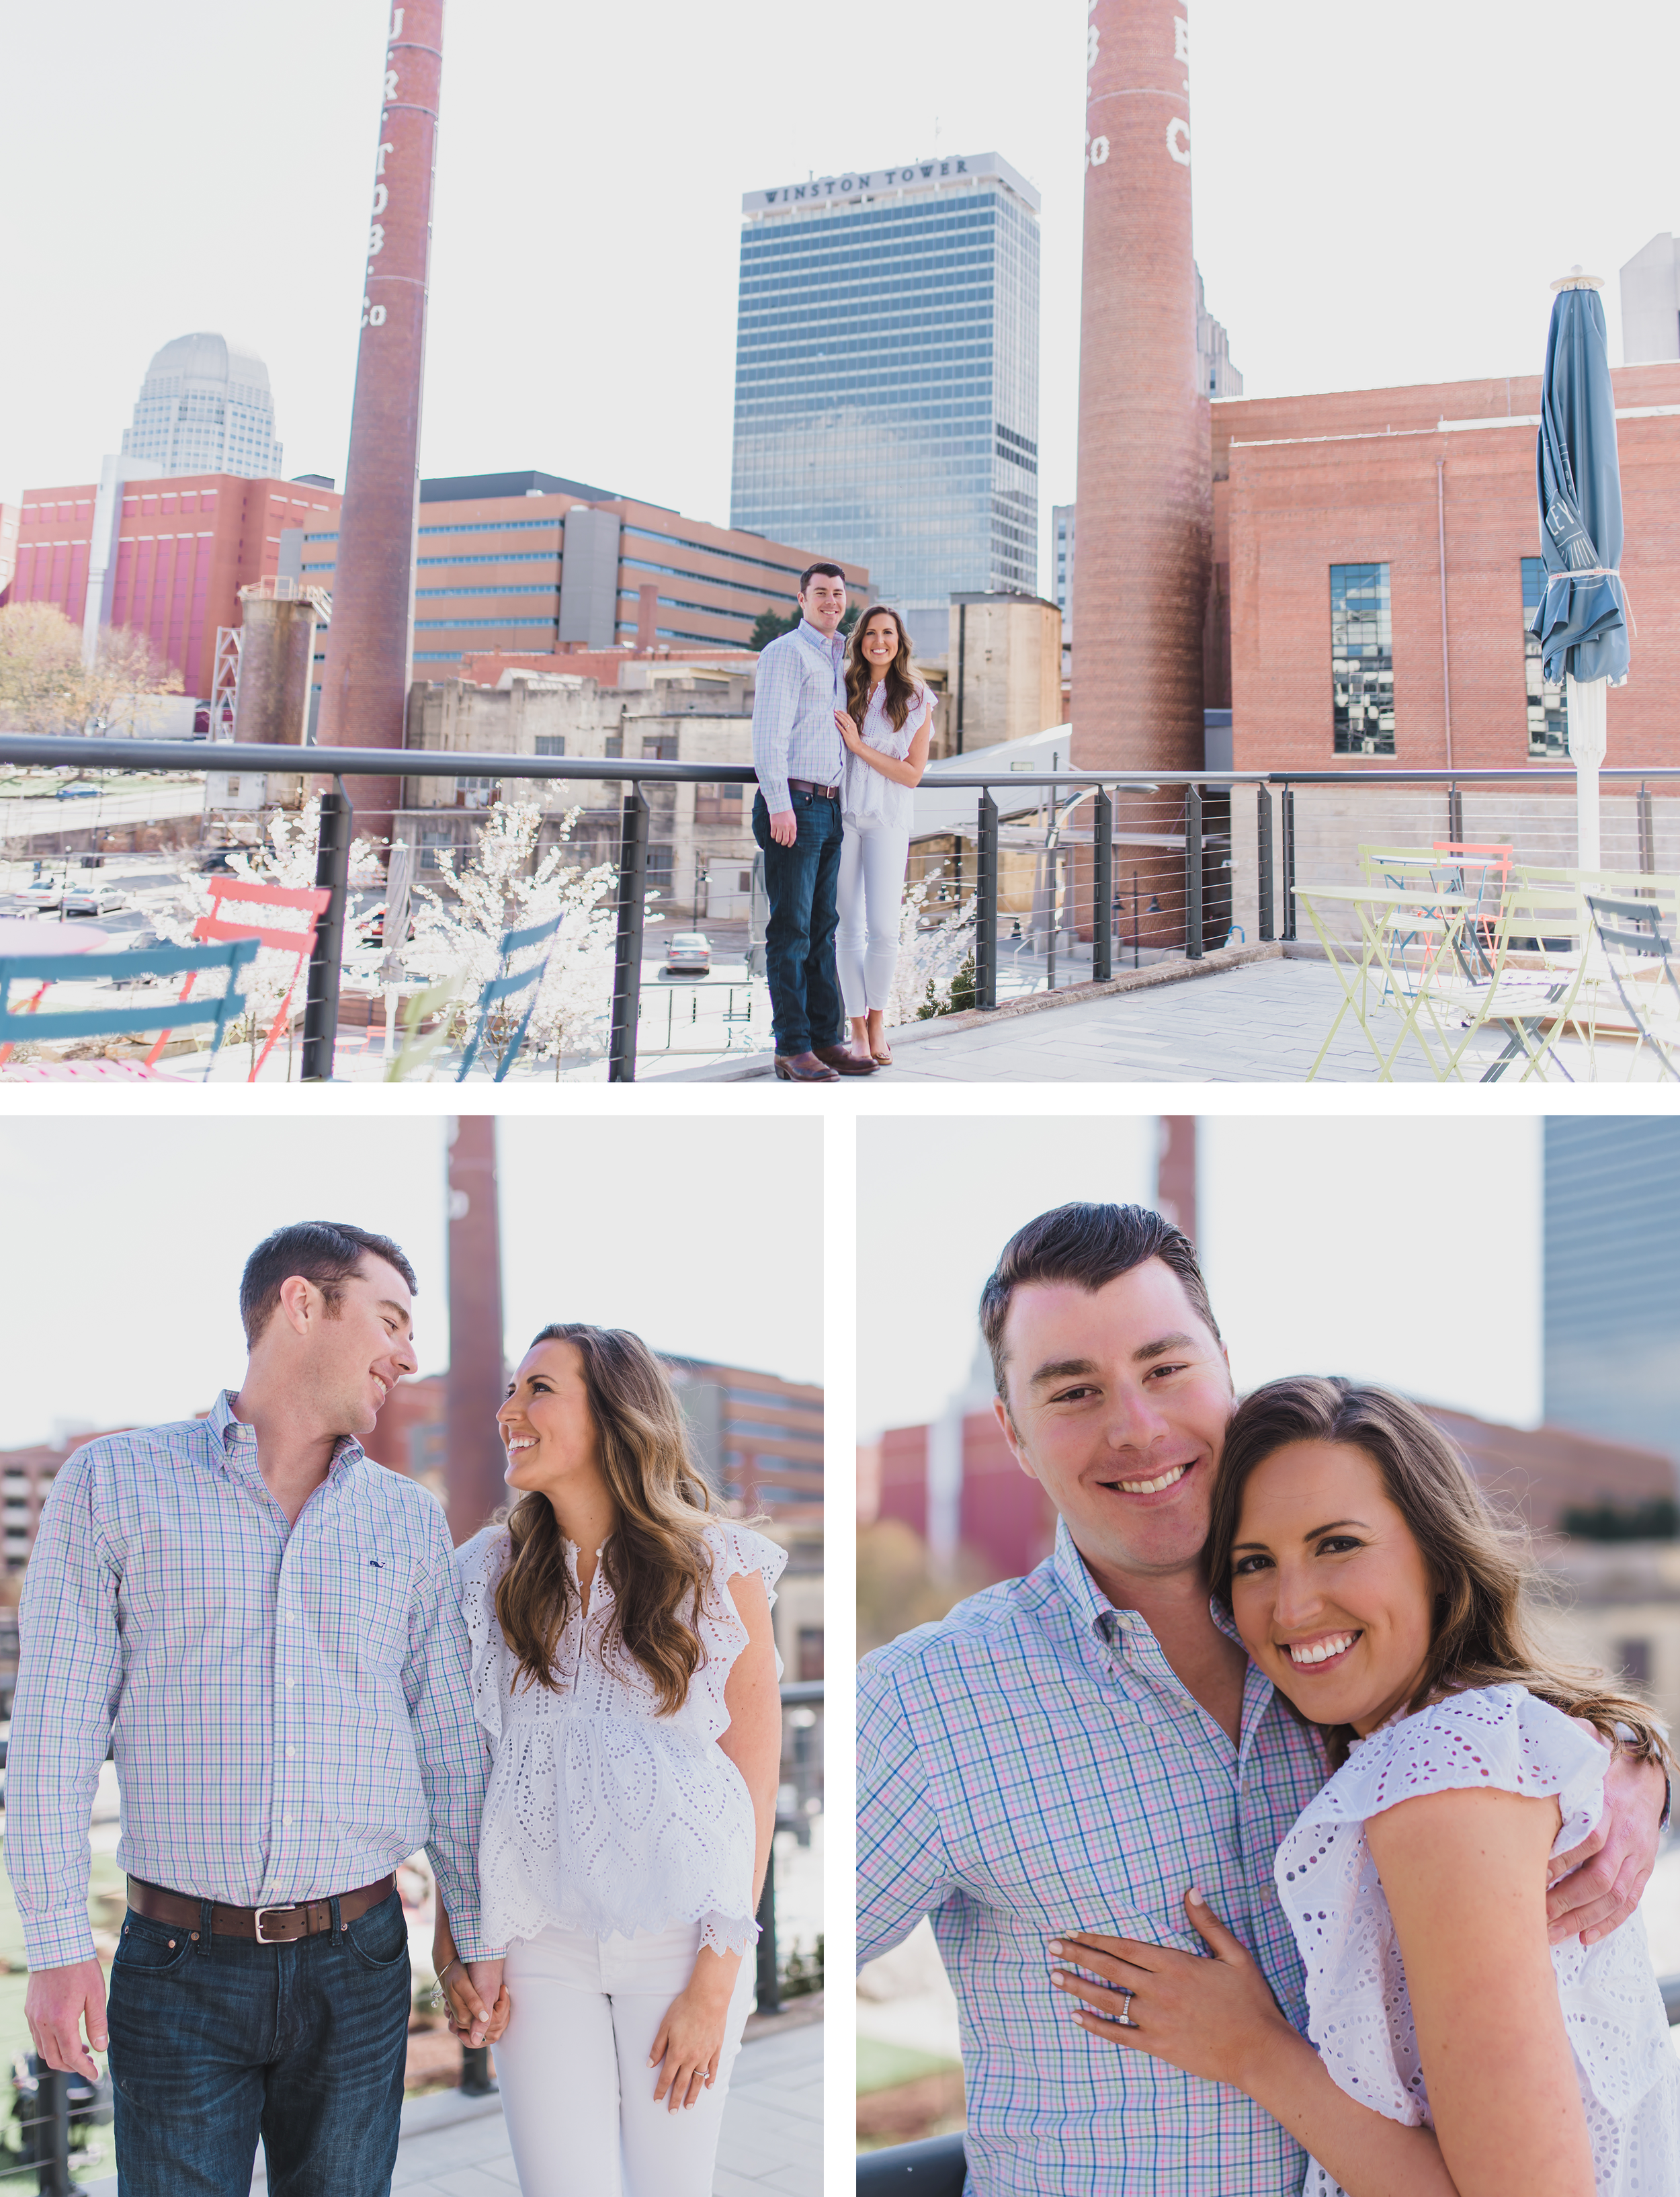 Liz and JB Engagement_Gallery 4.png